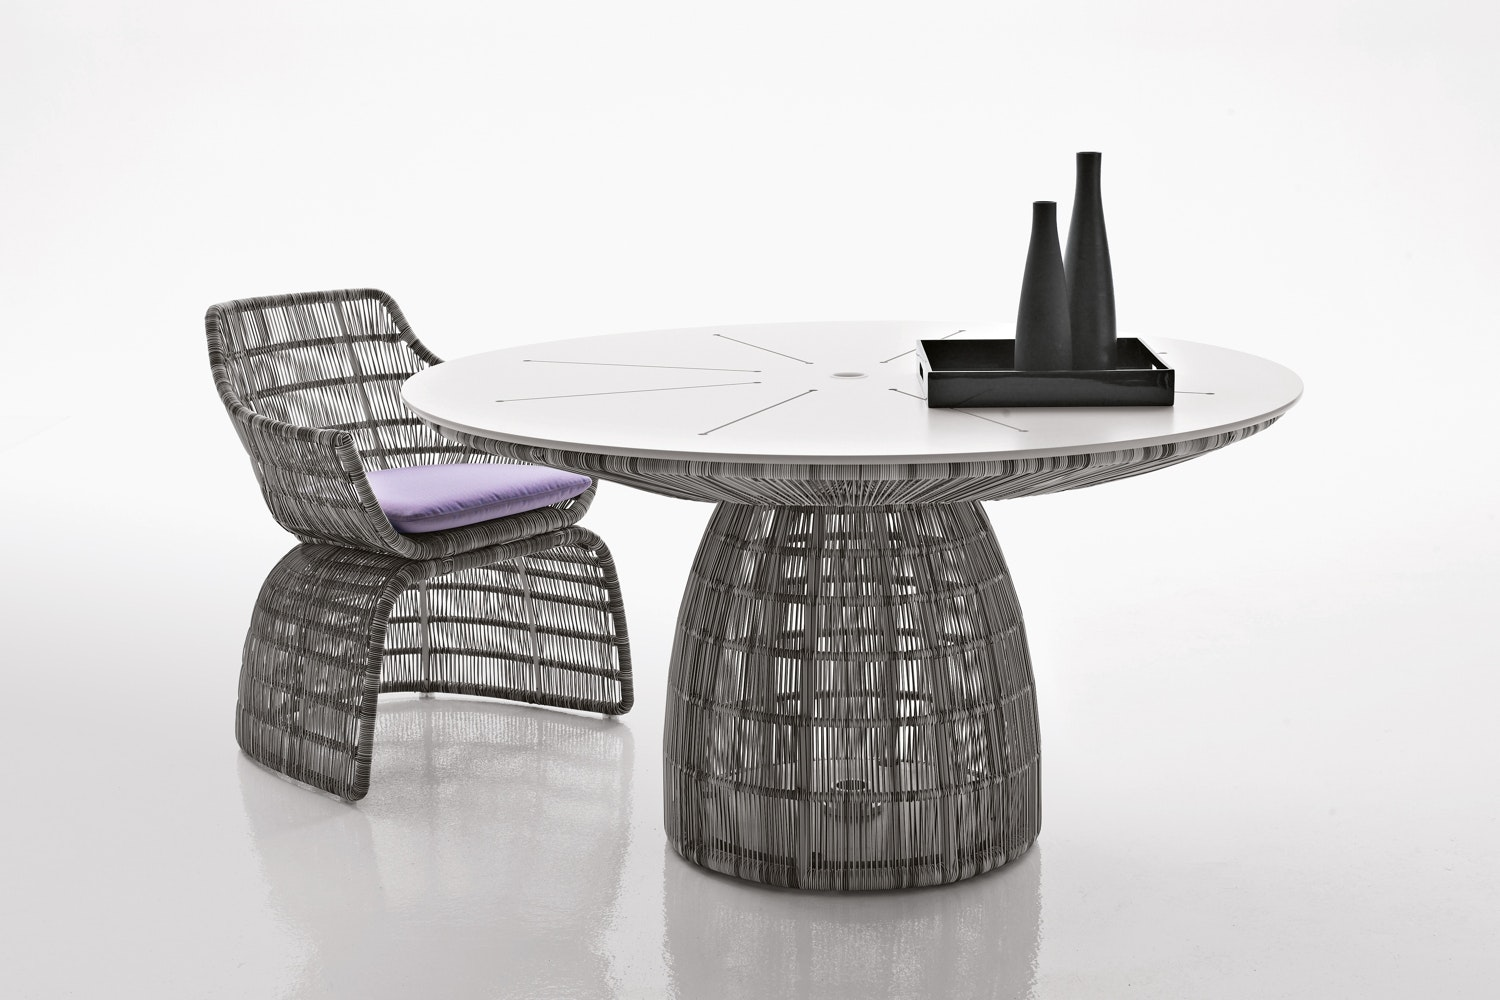 Crinoline Chair by Patricia Urquiola for B&B Italia